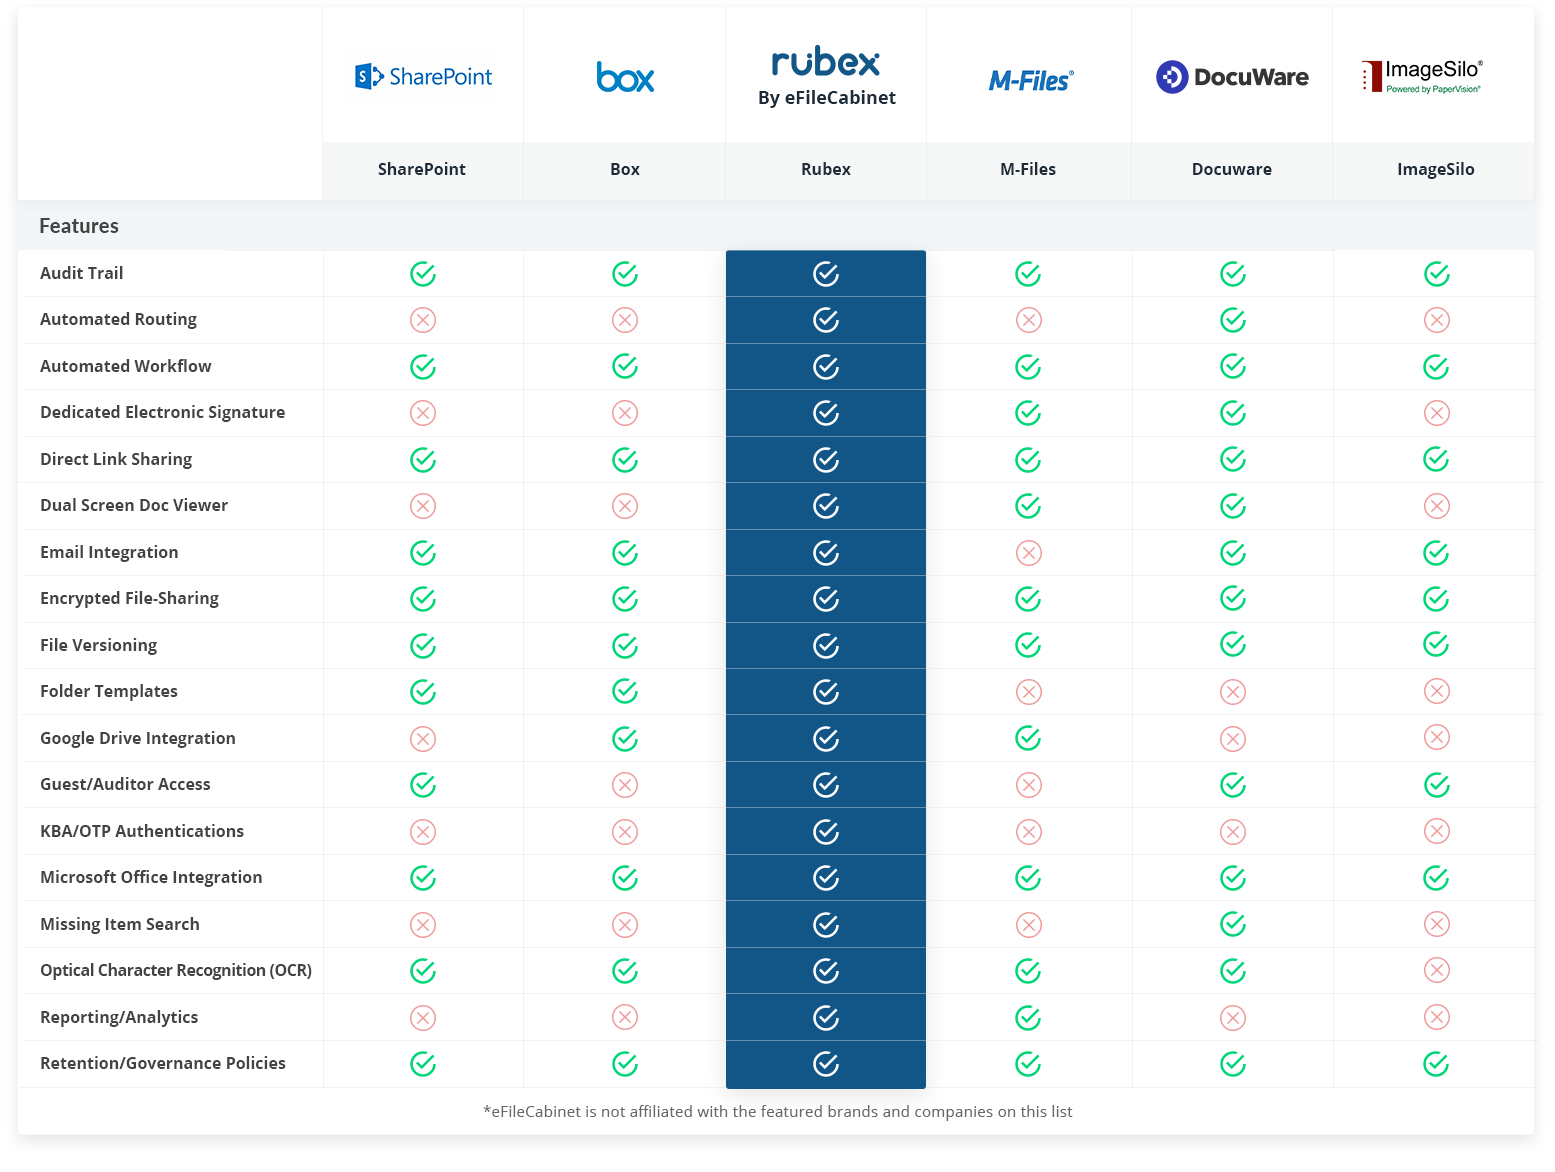 Rubex Comparison Chart With Logos UPDATED